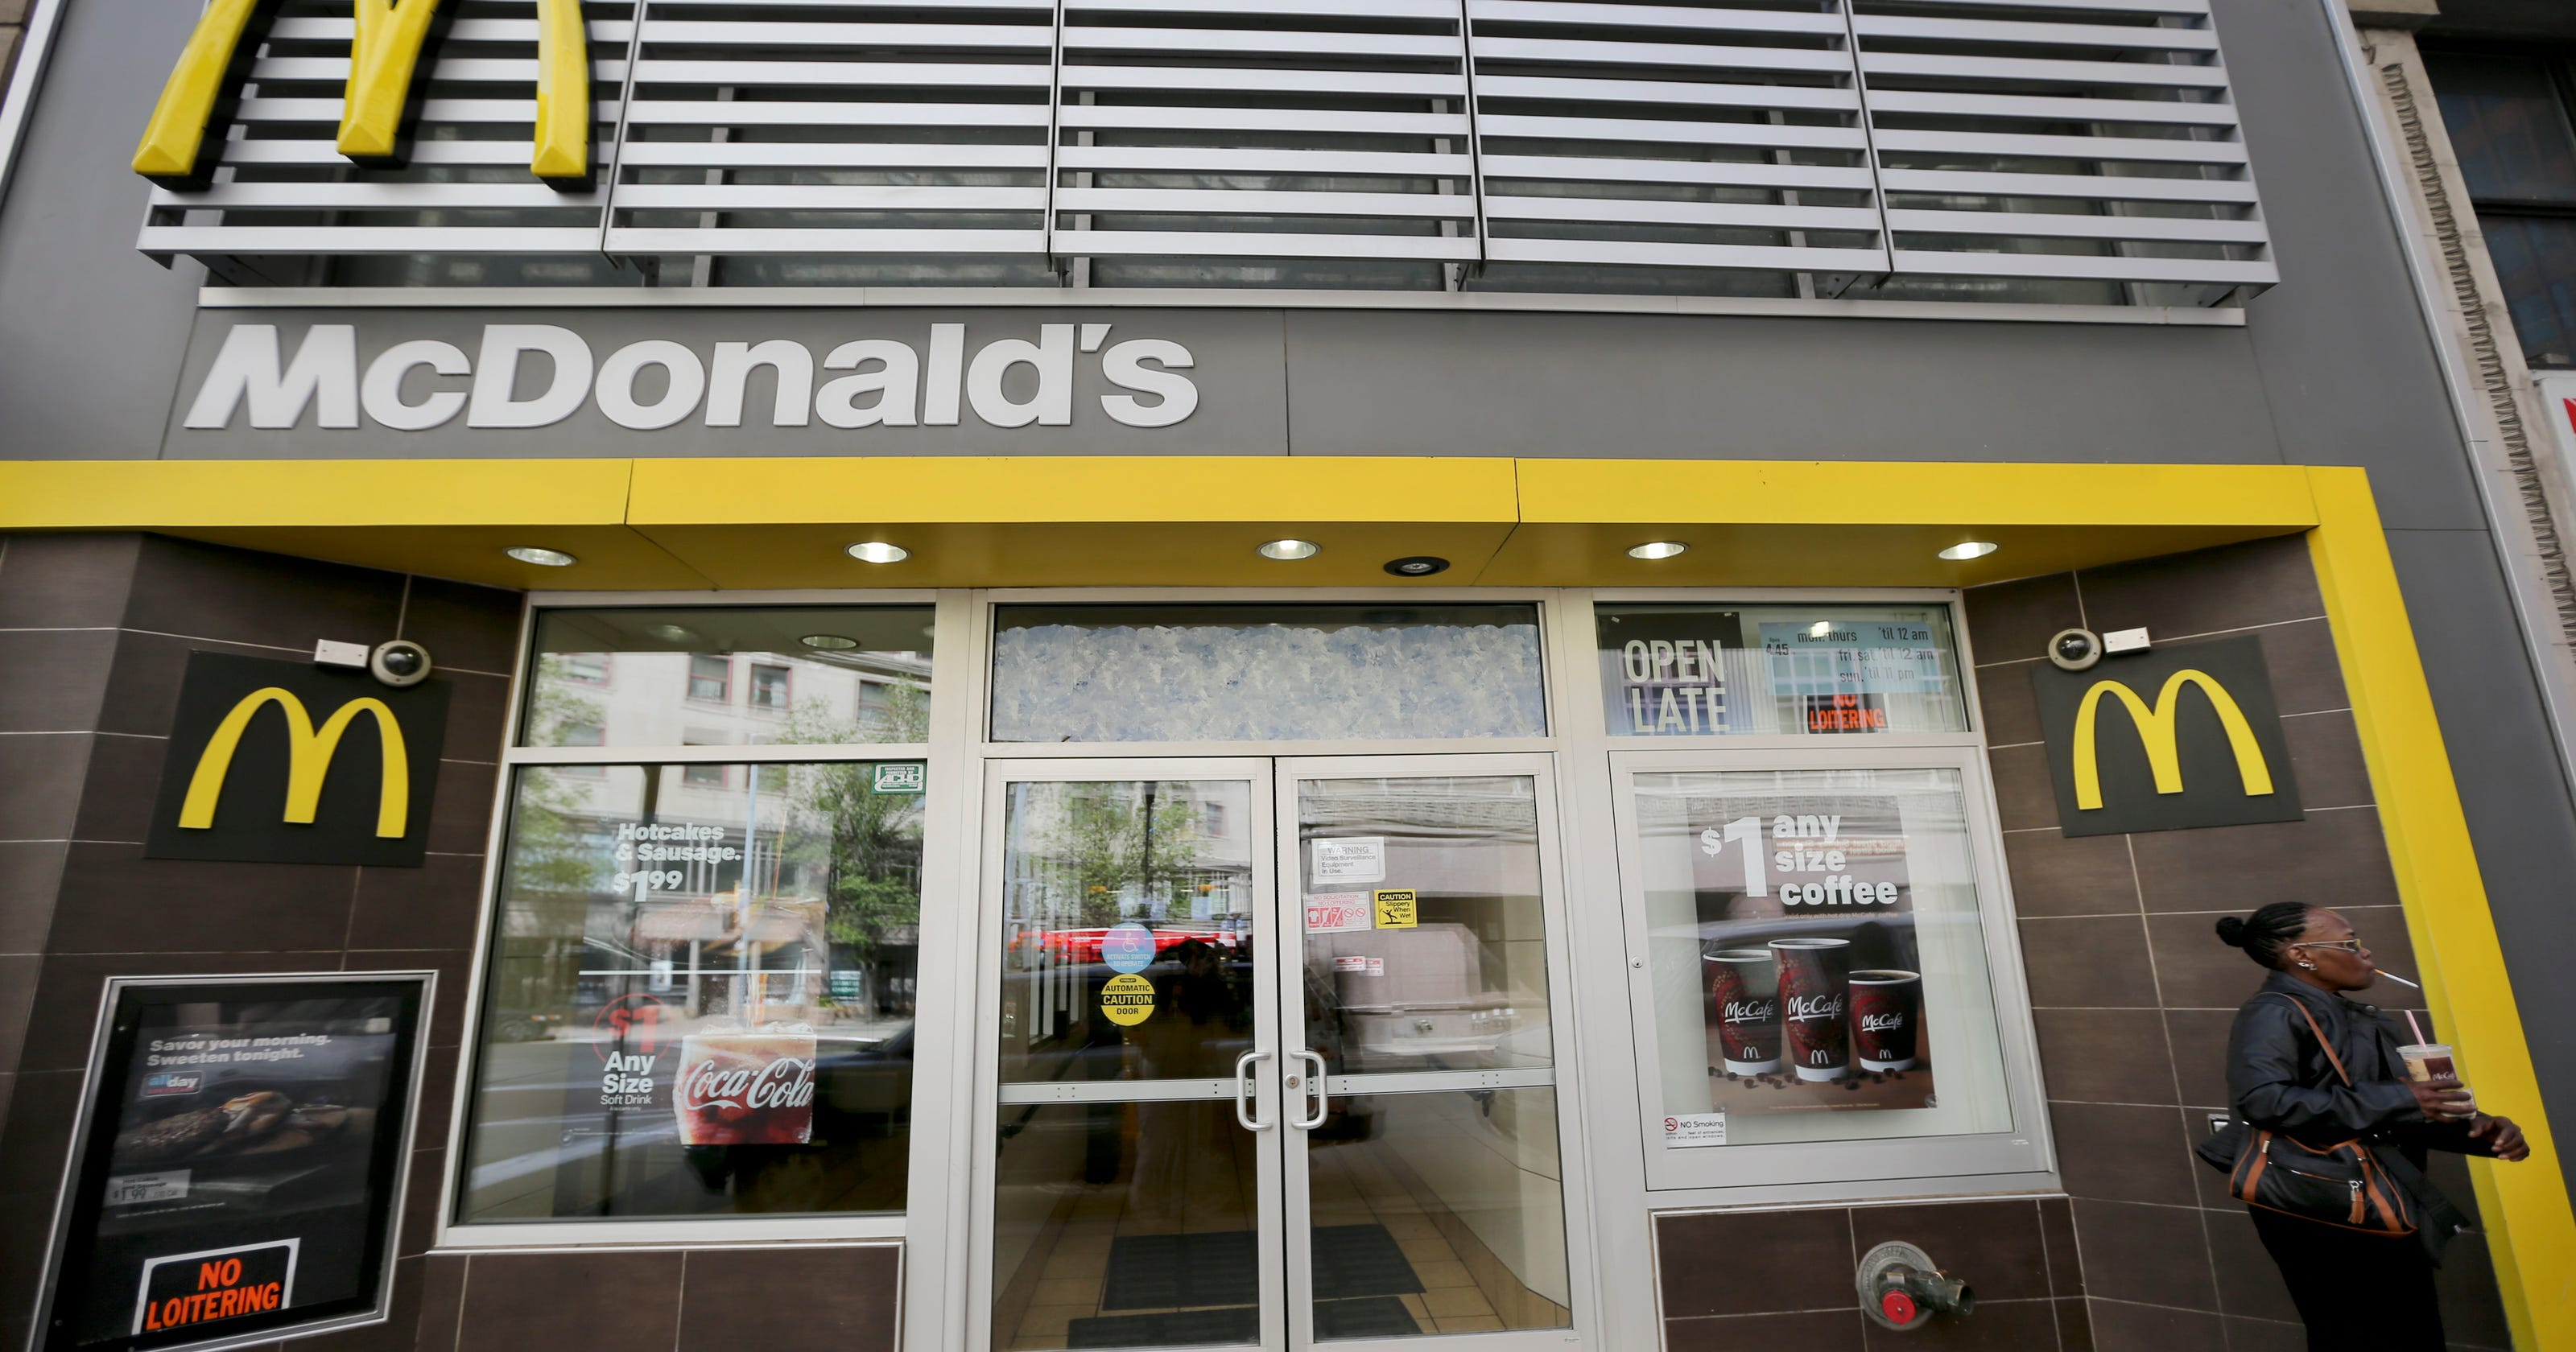 Mcdonalds Brings Back Dollar Menu But With Food For 2 3 Too